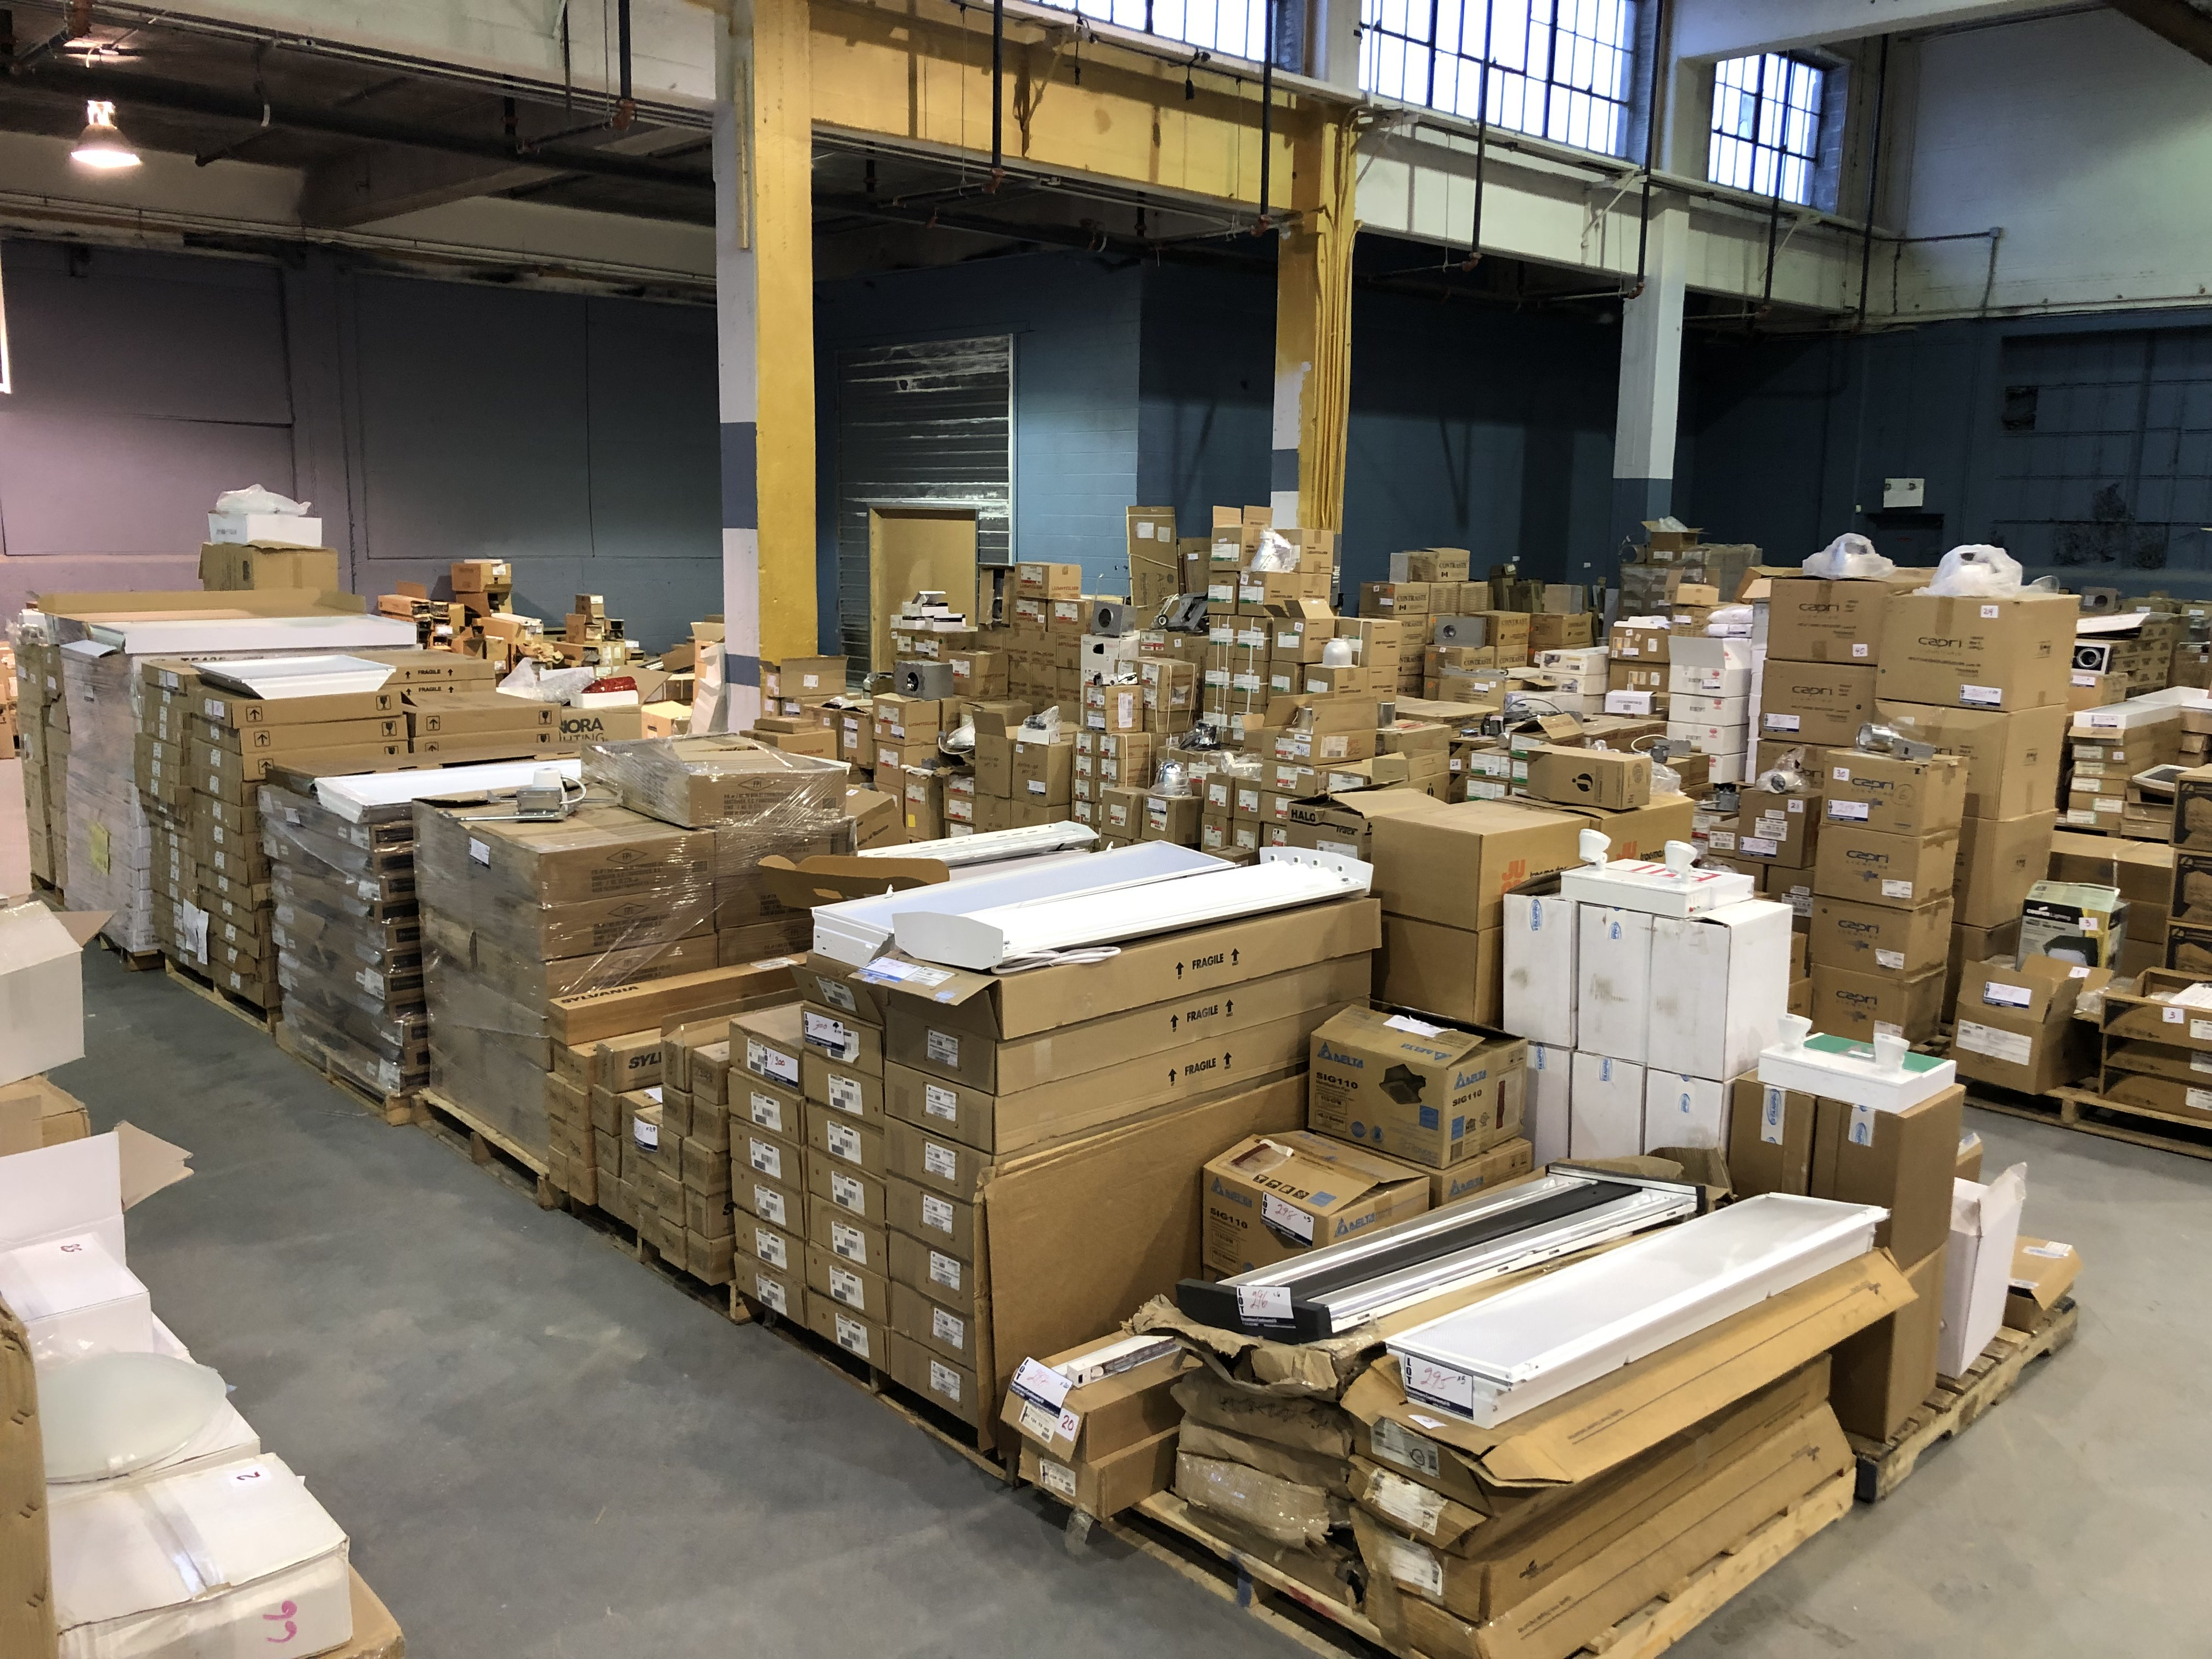 Public Auction - Bankruptcy of Litron Lighting Distributor